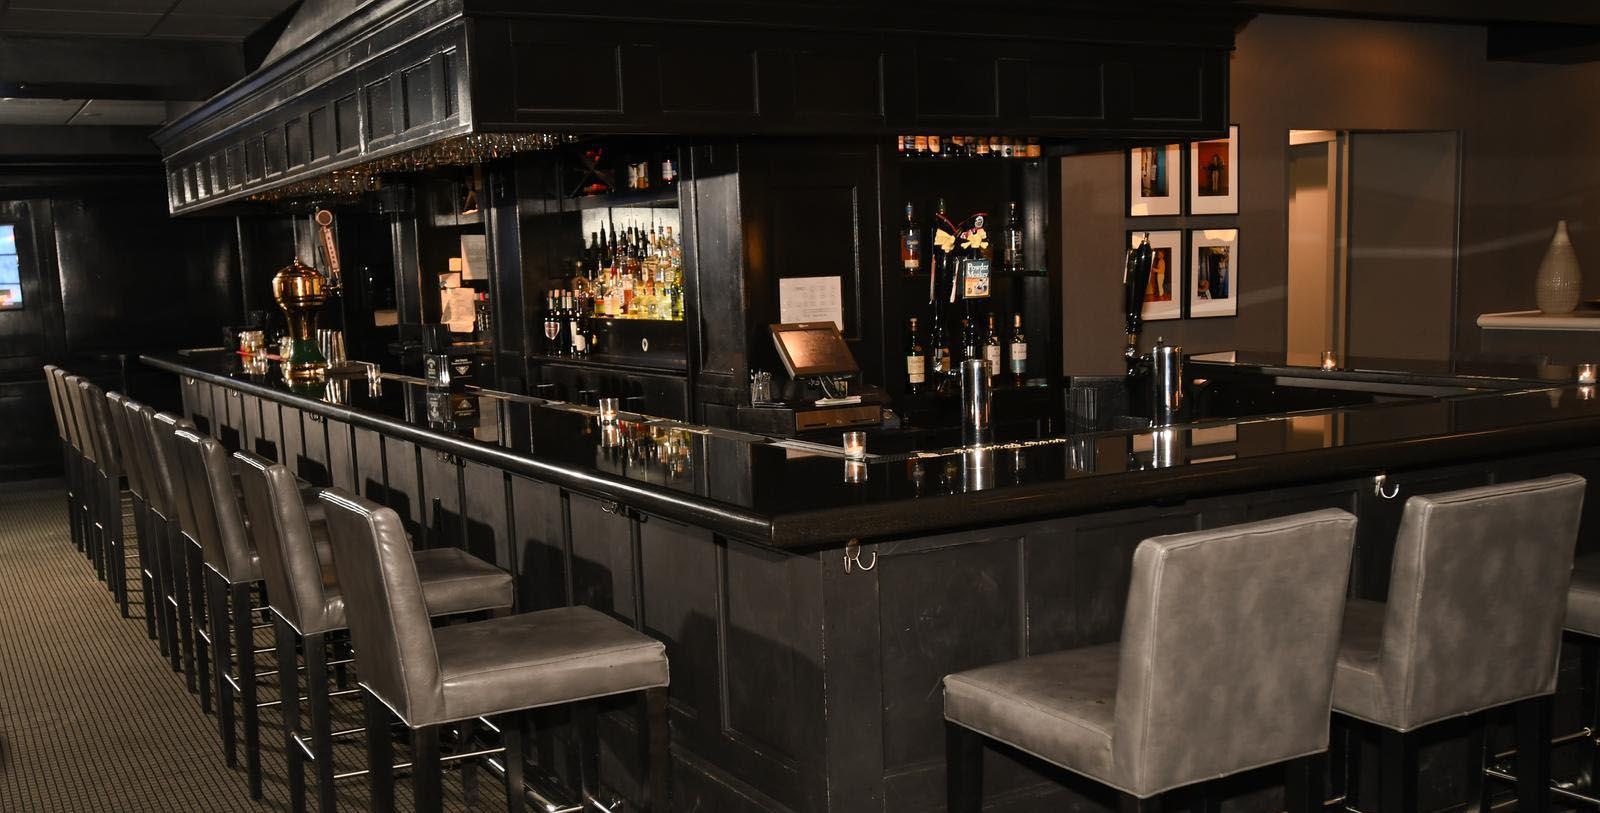 Image of LB Tavern, Lord Baltimore Hotel in Baltimore, Maryland, 1928, Member of Historic Hotels of America, Taste